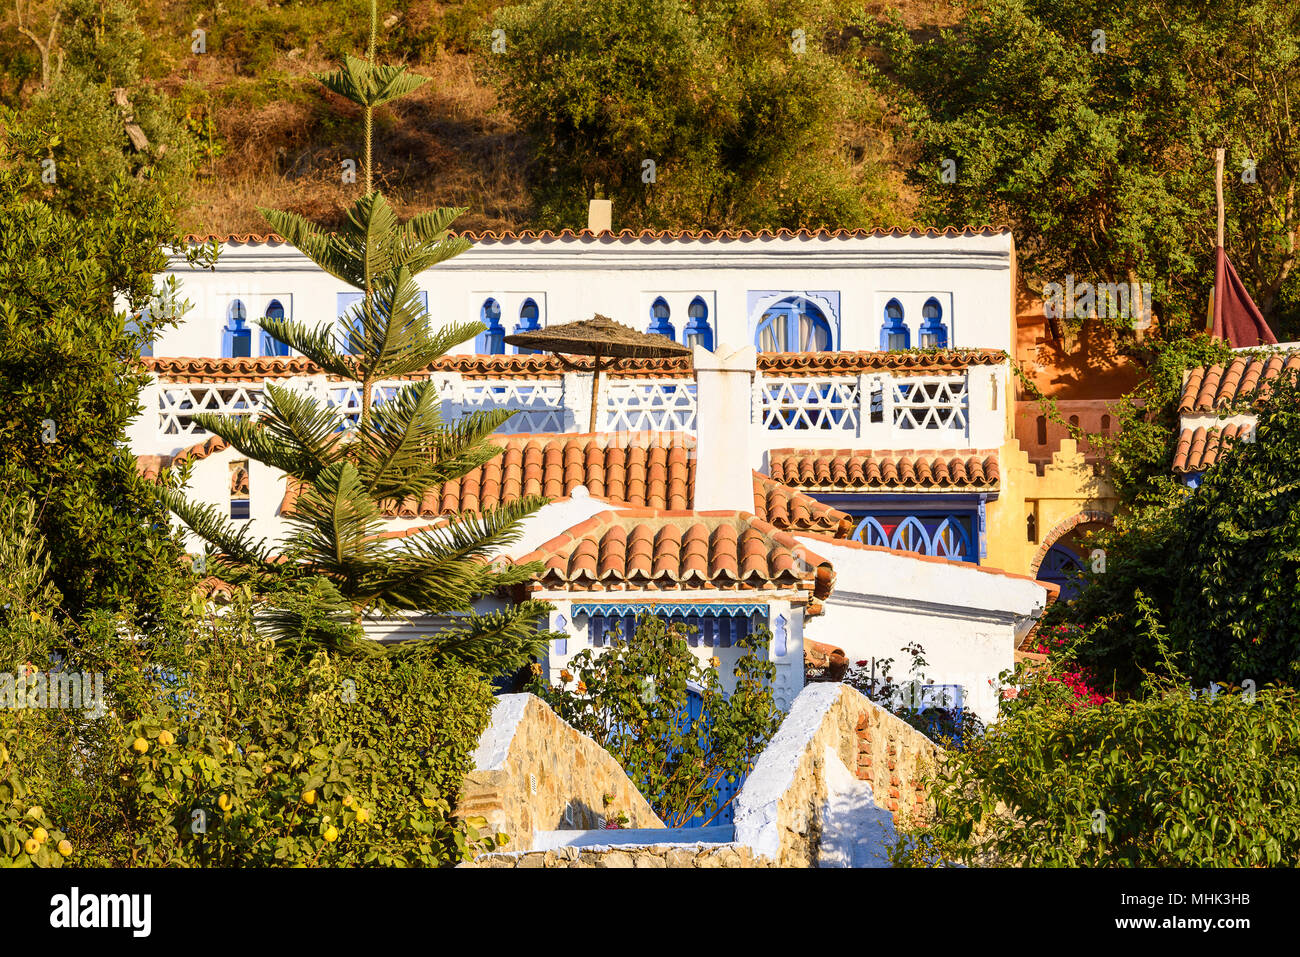 Hotel in Chefchaouen, Morocco. - Stock Image